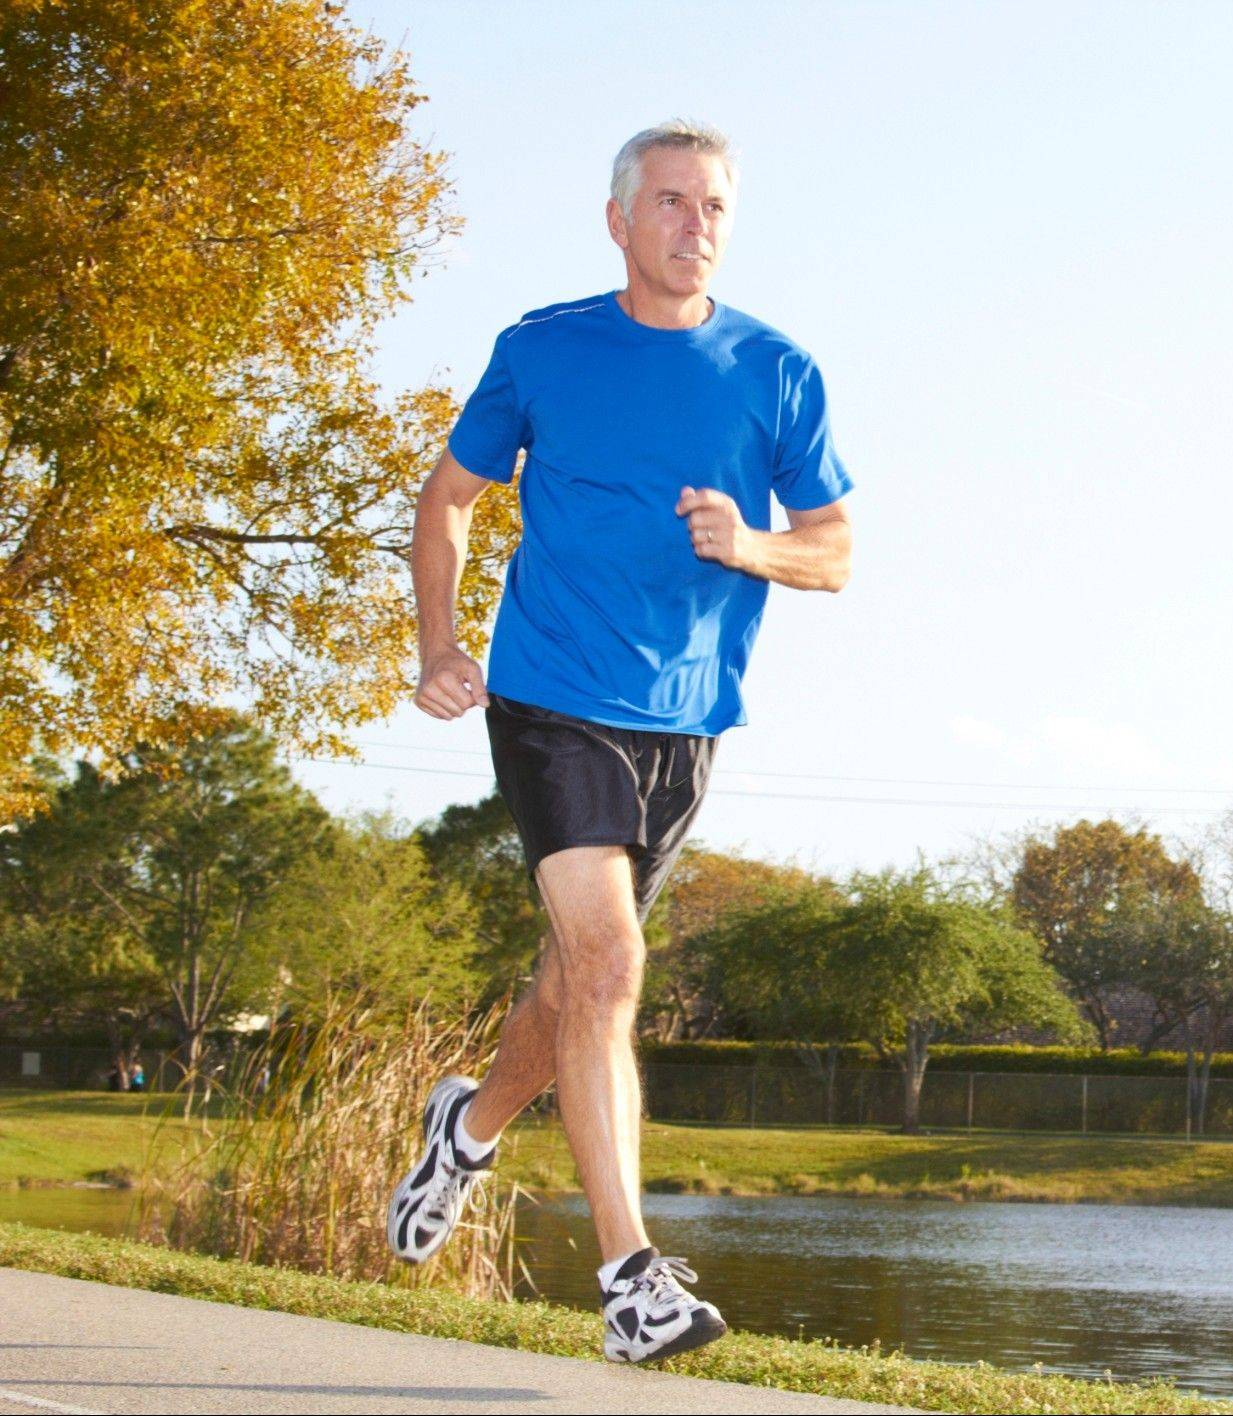 Men can improve many aspects of their health by exercising later in life.